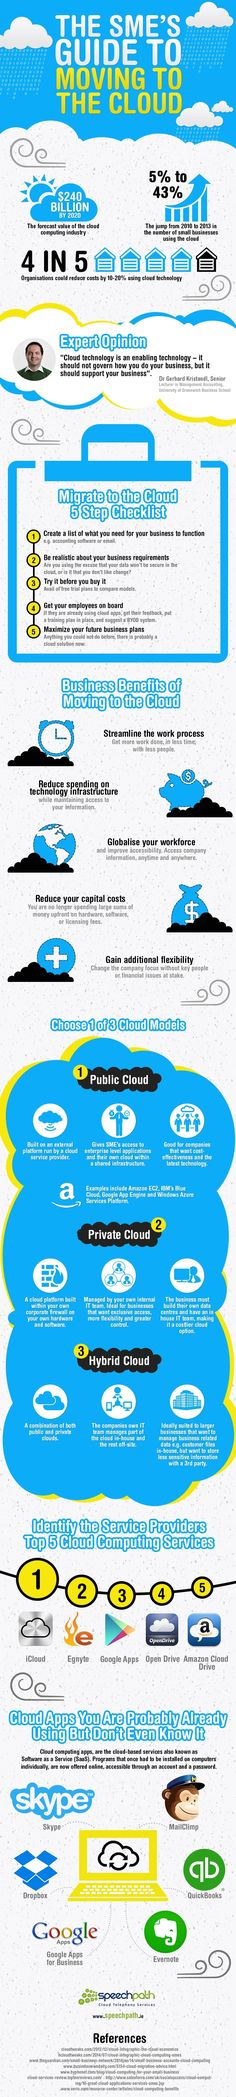 The SME's Guide to Moving to the Cloud - Inforgraphic #Cloud #CloudTechnology #SME